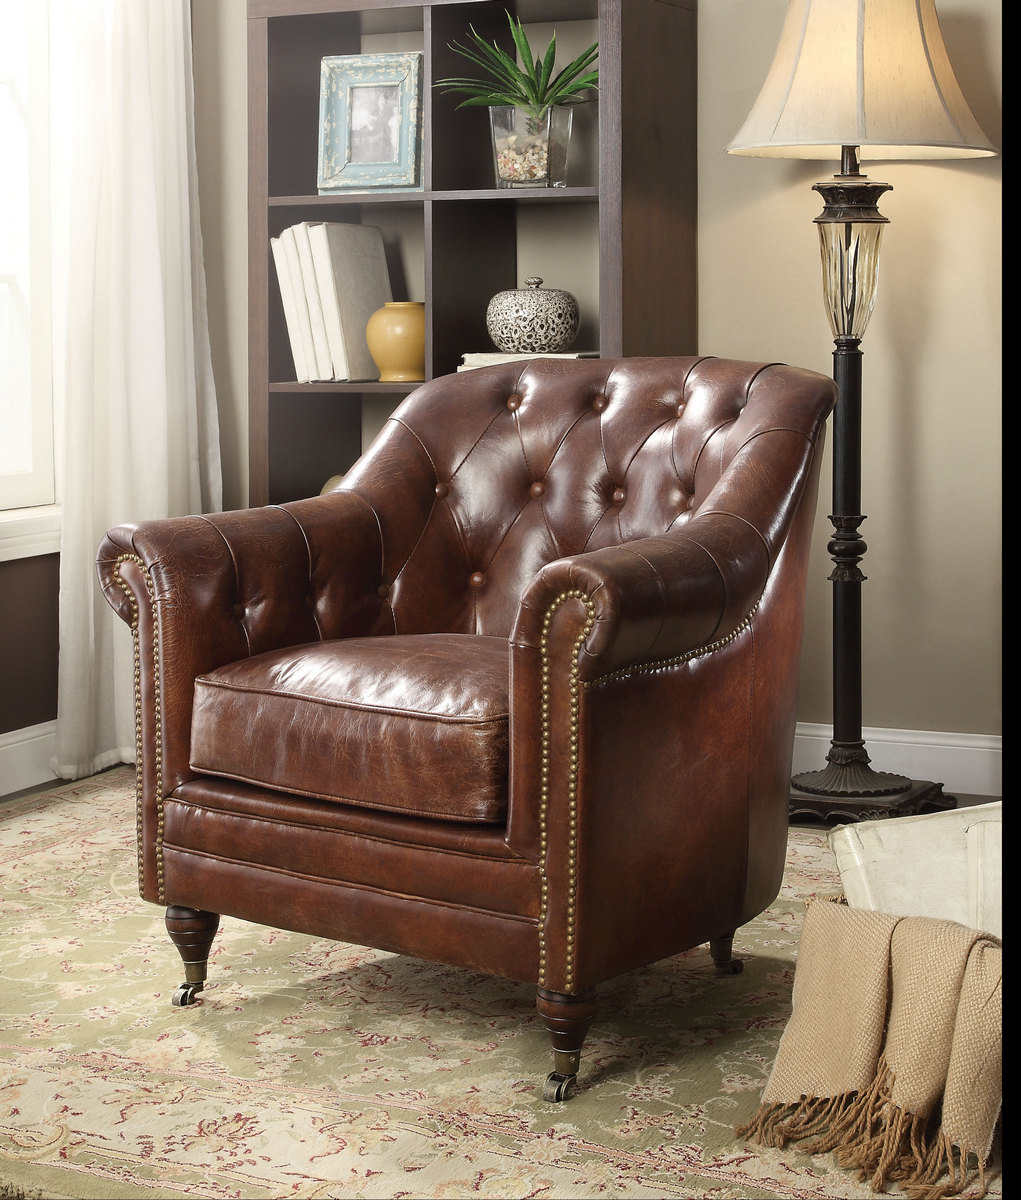 Aberdeen Chair in Vintage Dark Brown Top Grain Leather - Acme Furniture 53627